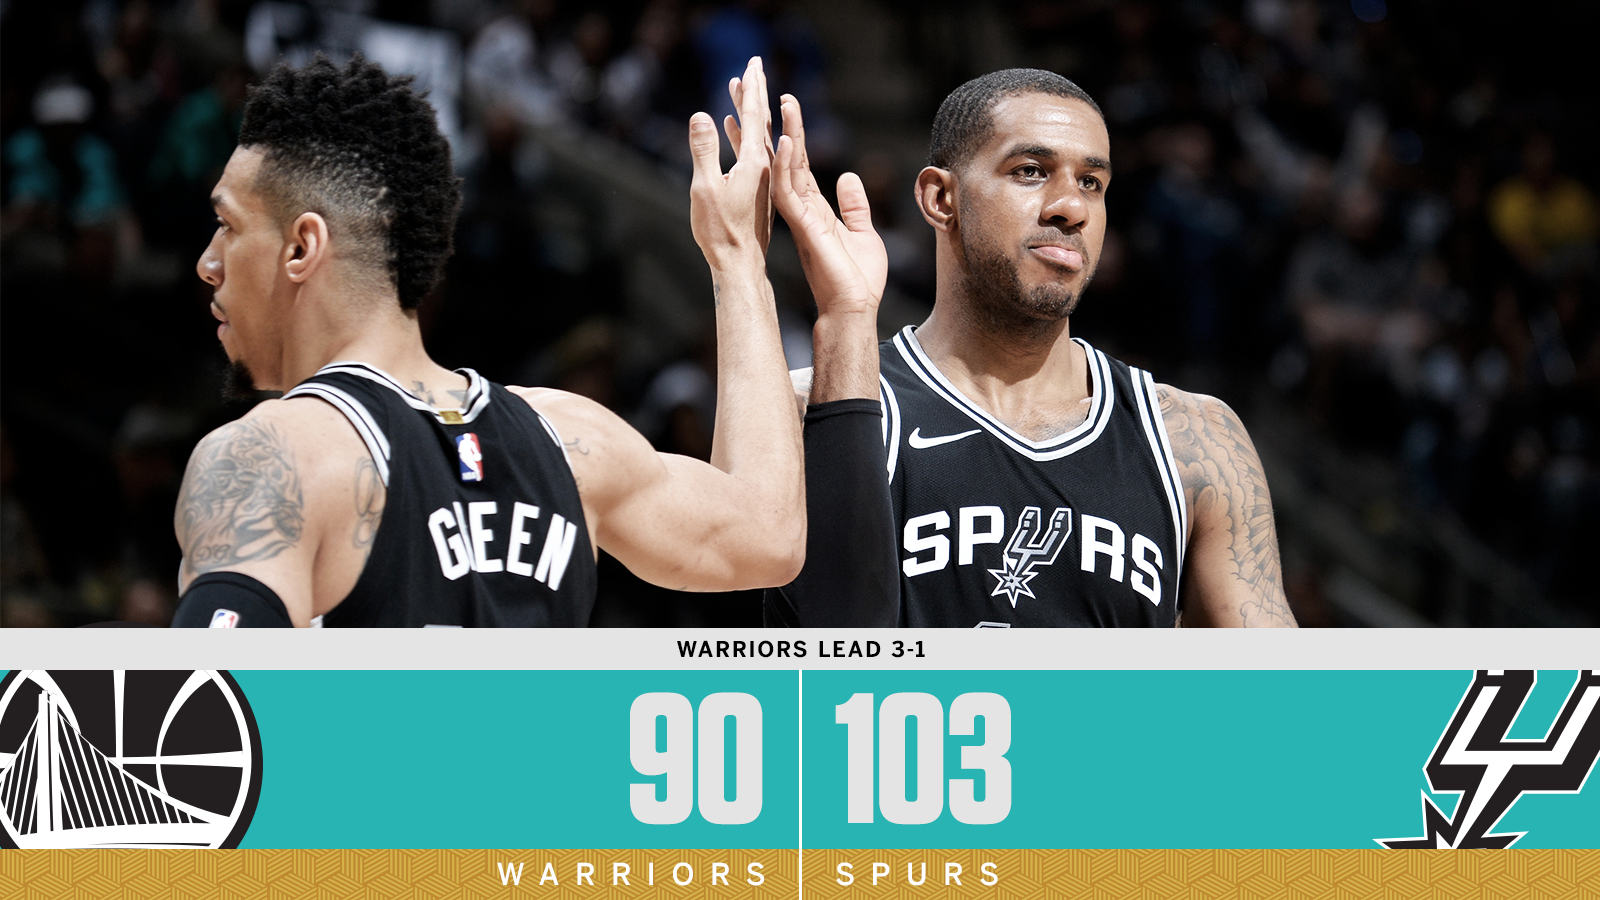 Spurs aren't going down without a fight! https://t.co/72C3UPluzj